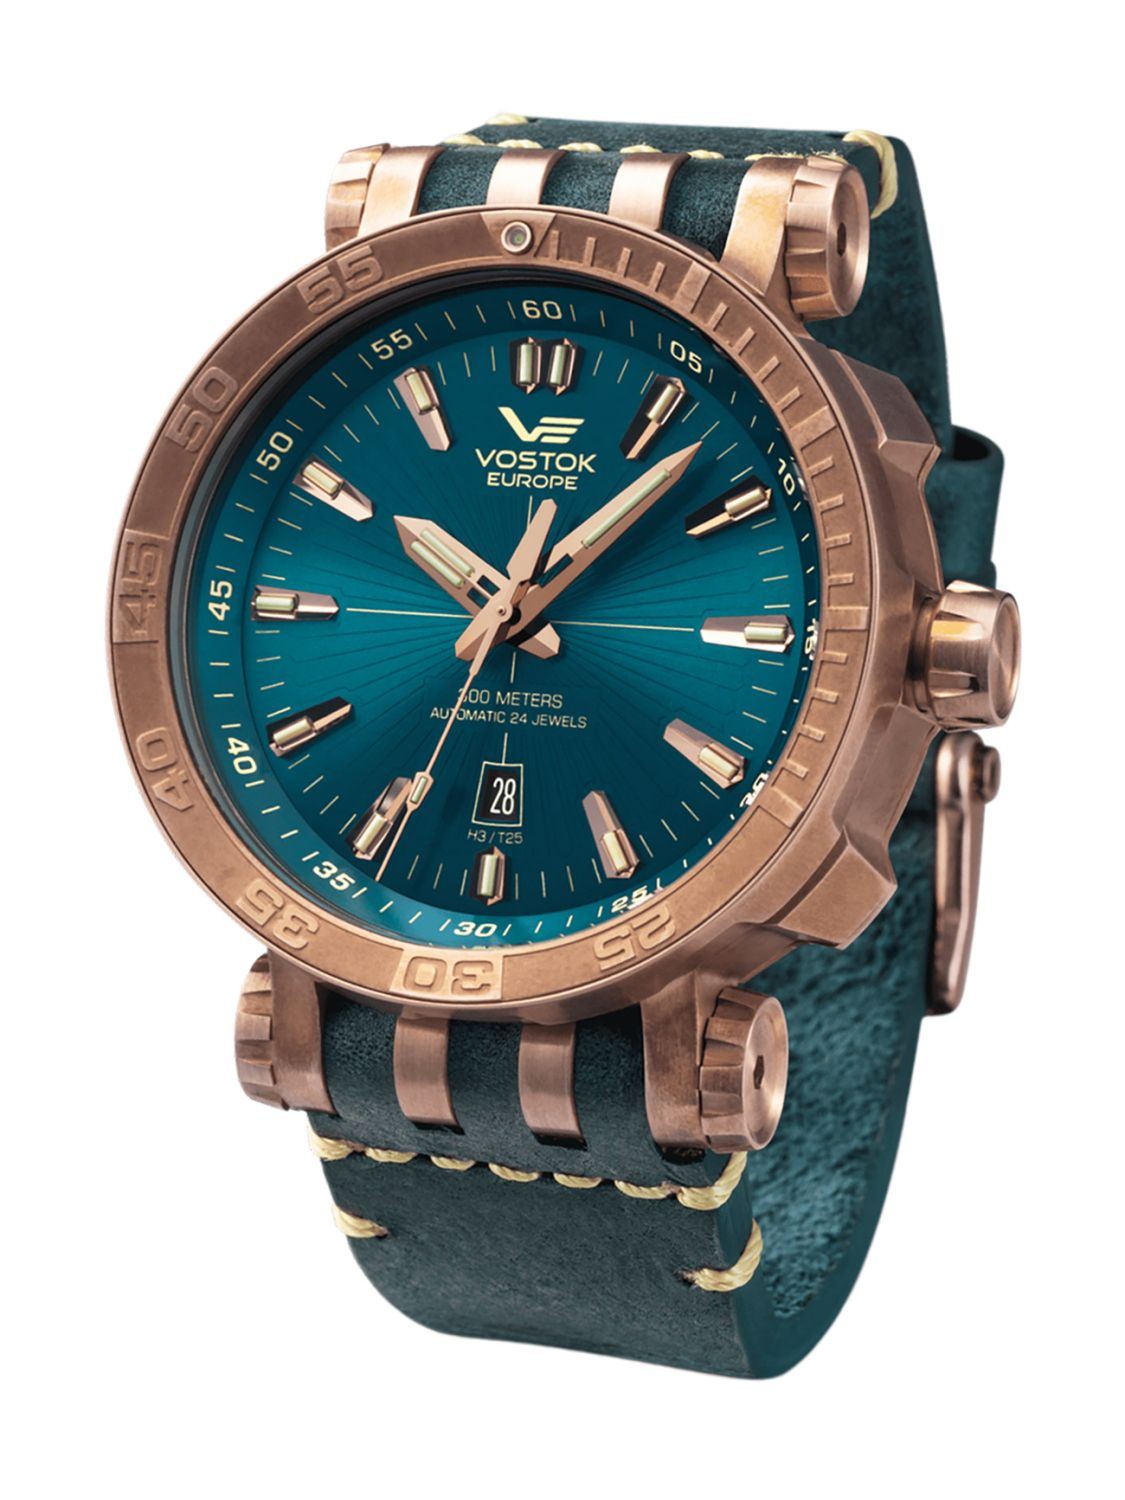 96a42aacd7cc Vostok Europe Automatic Mens Watch Energia Rocket Bronze NH35A-575O286